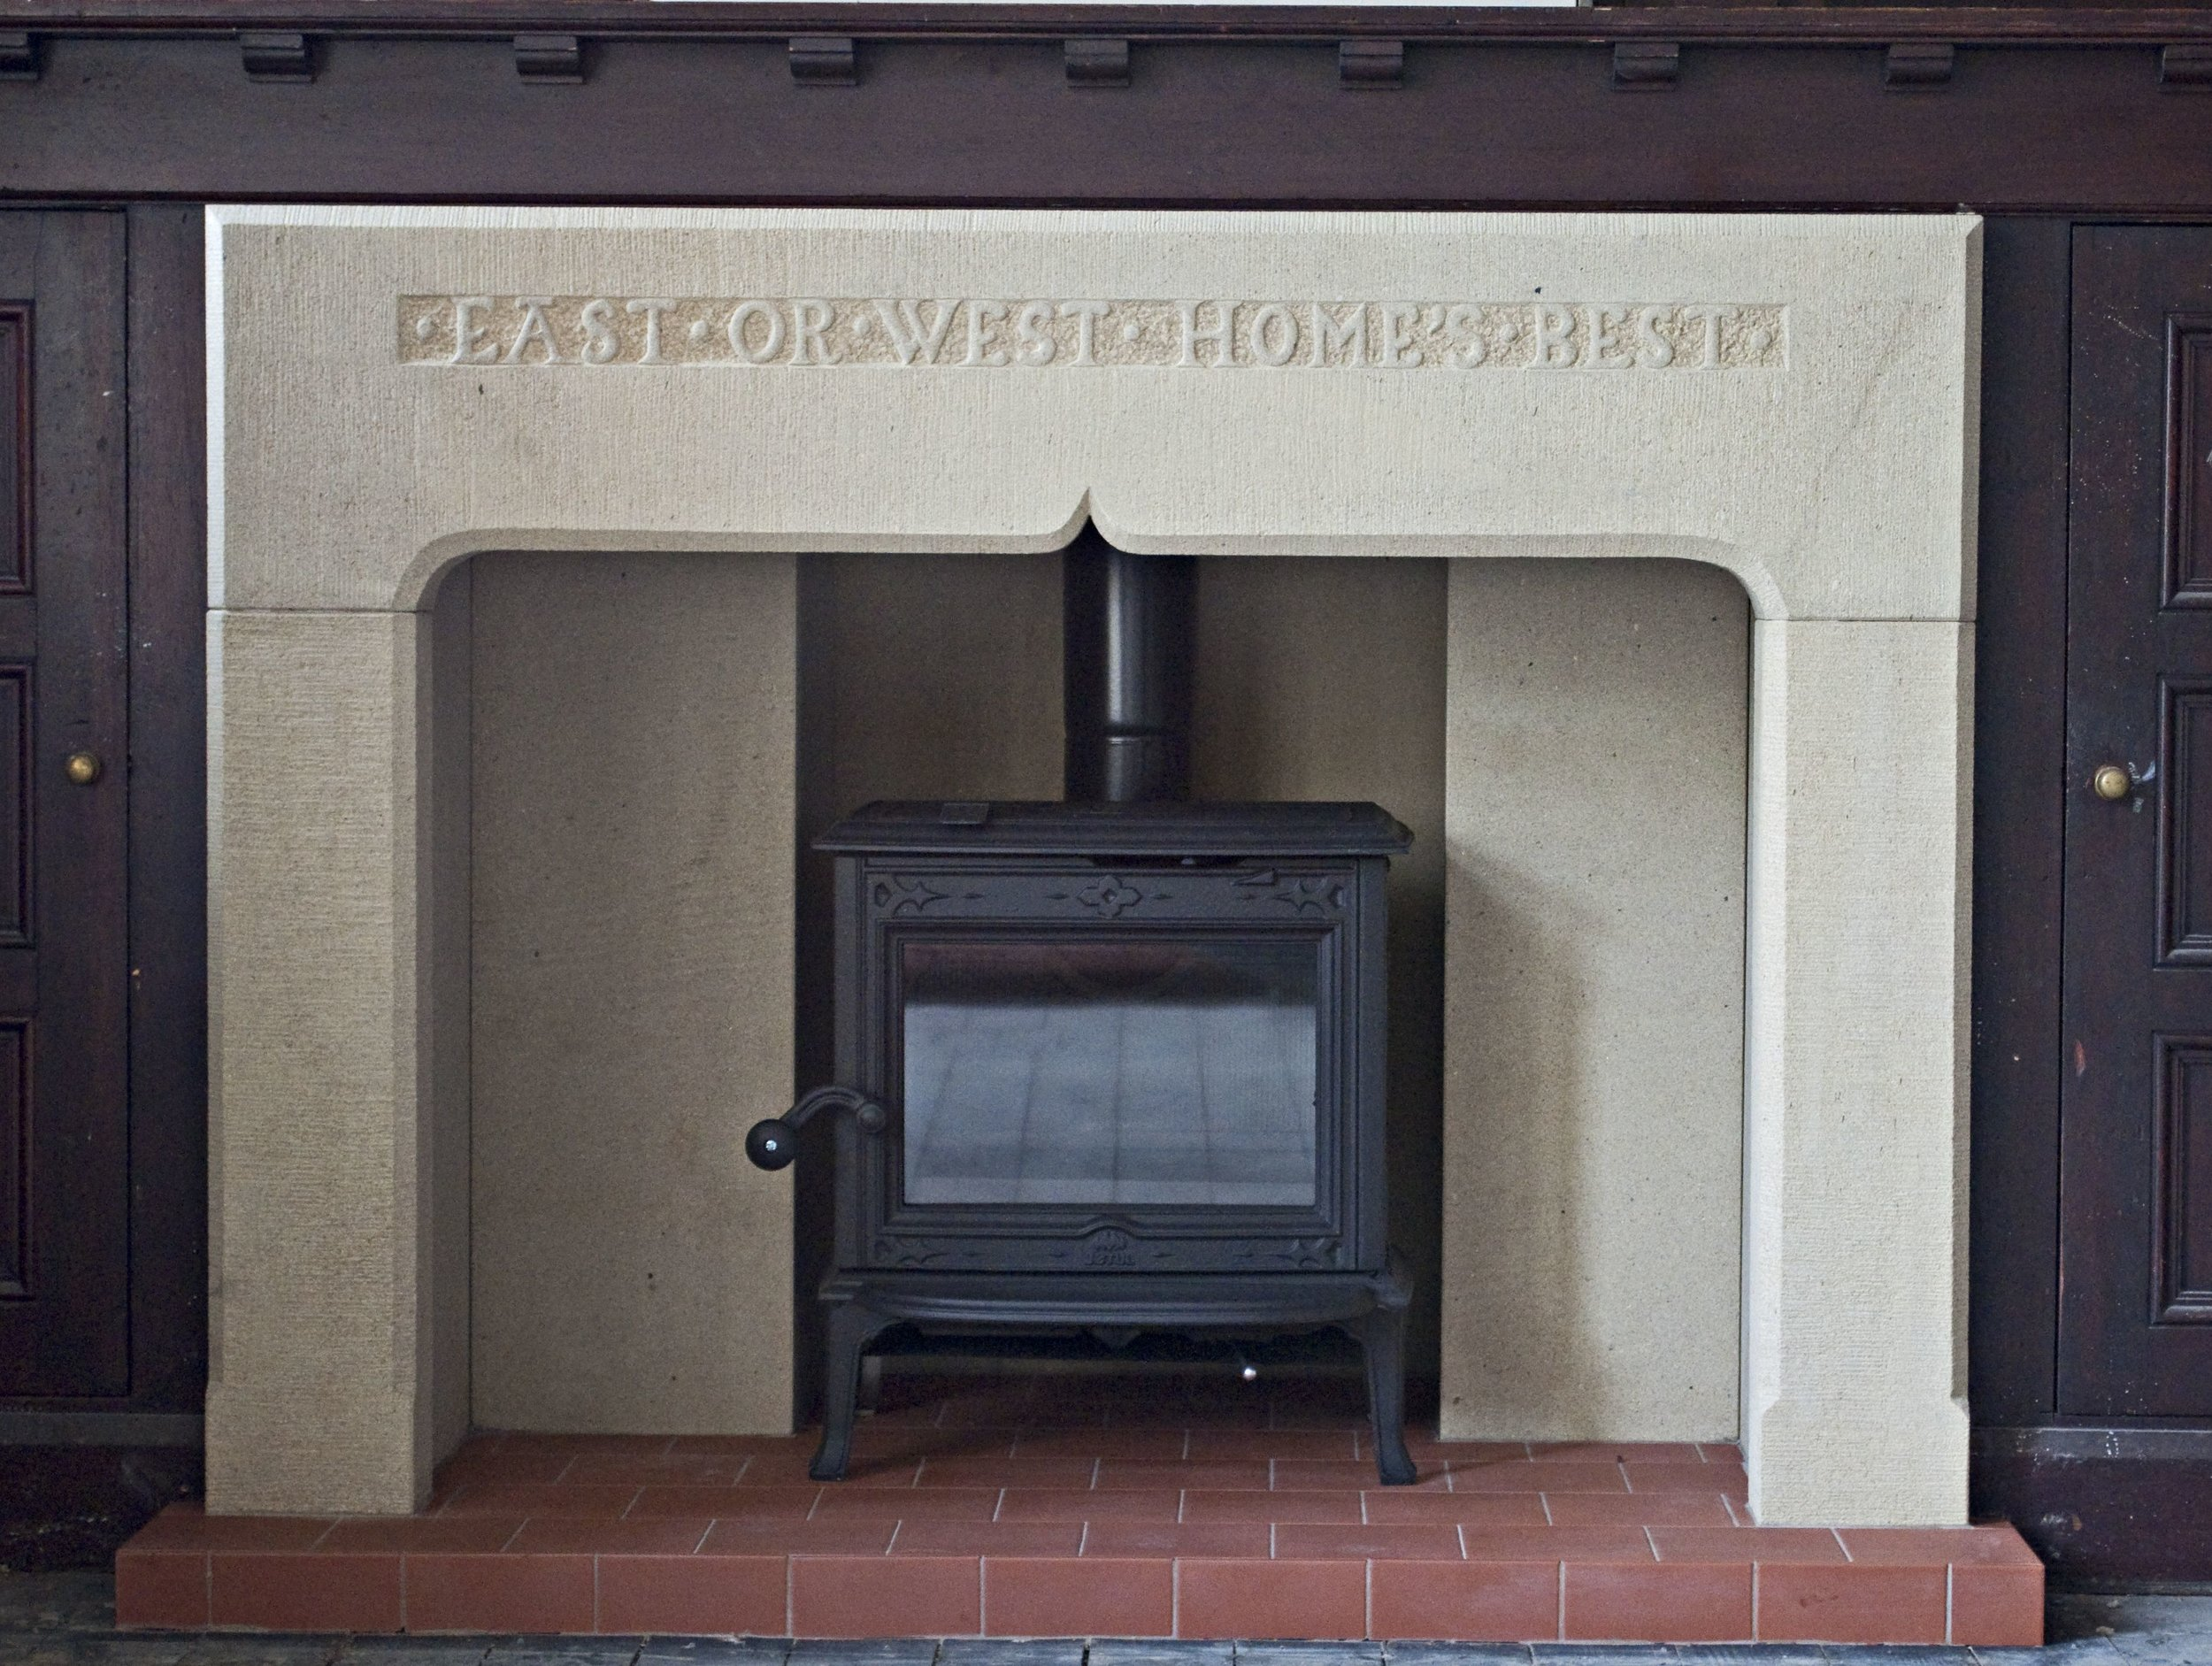 Our new fireplace and stove...just in time for a warm spring!